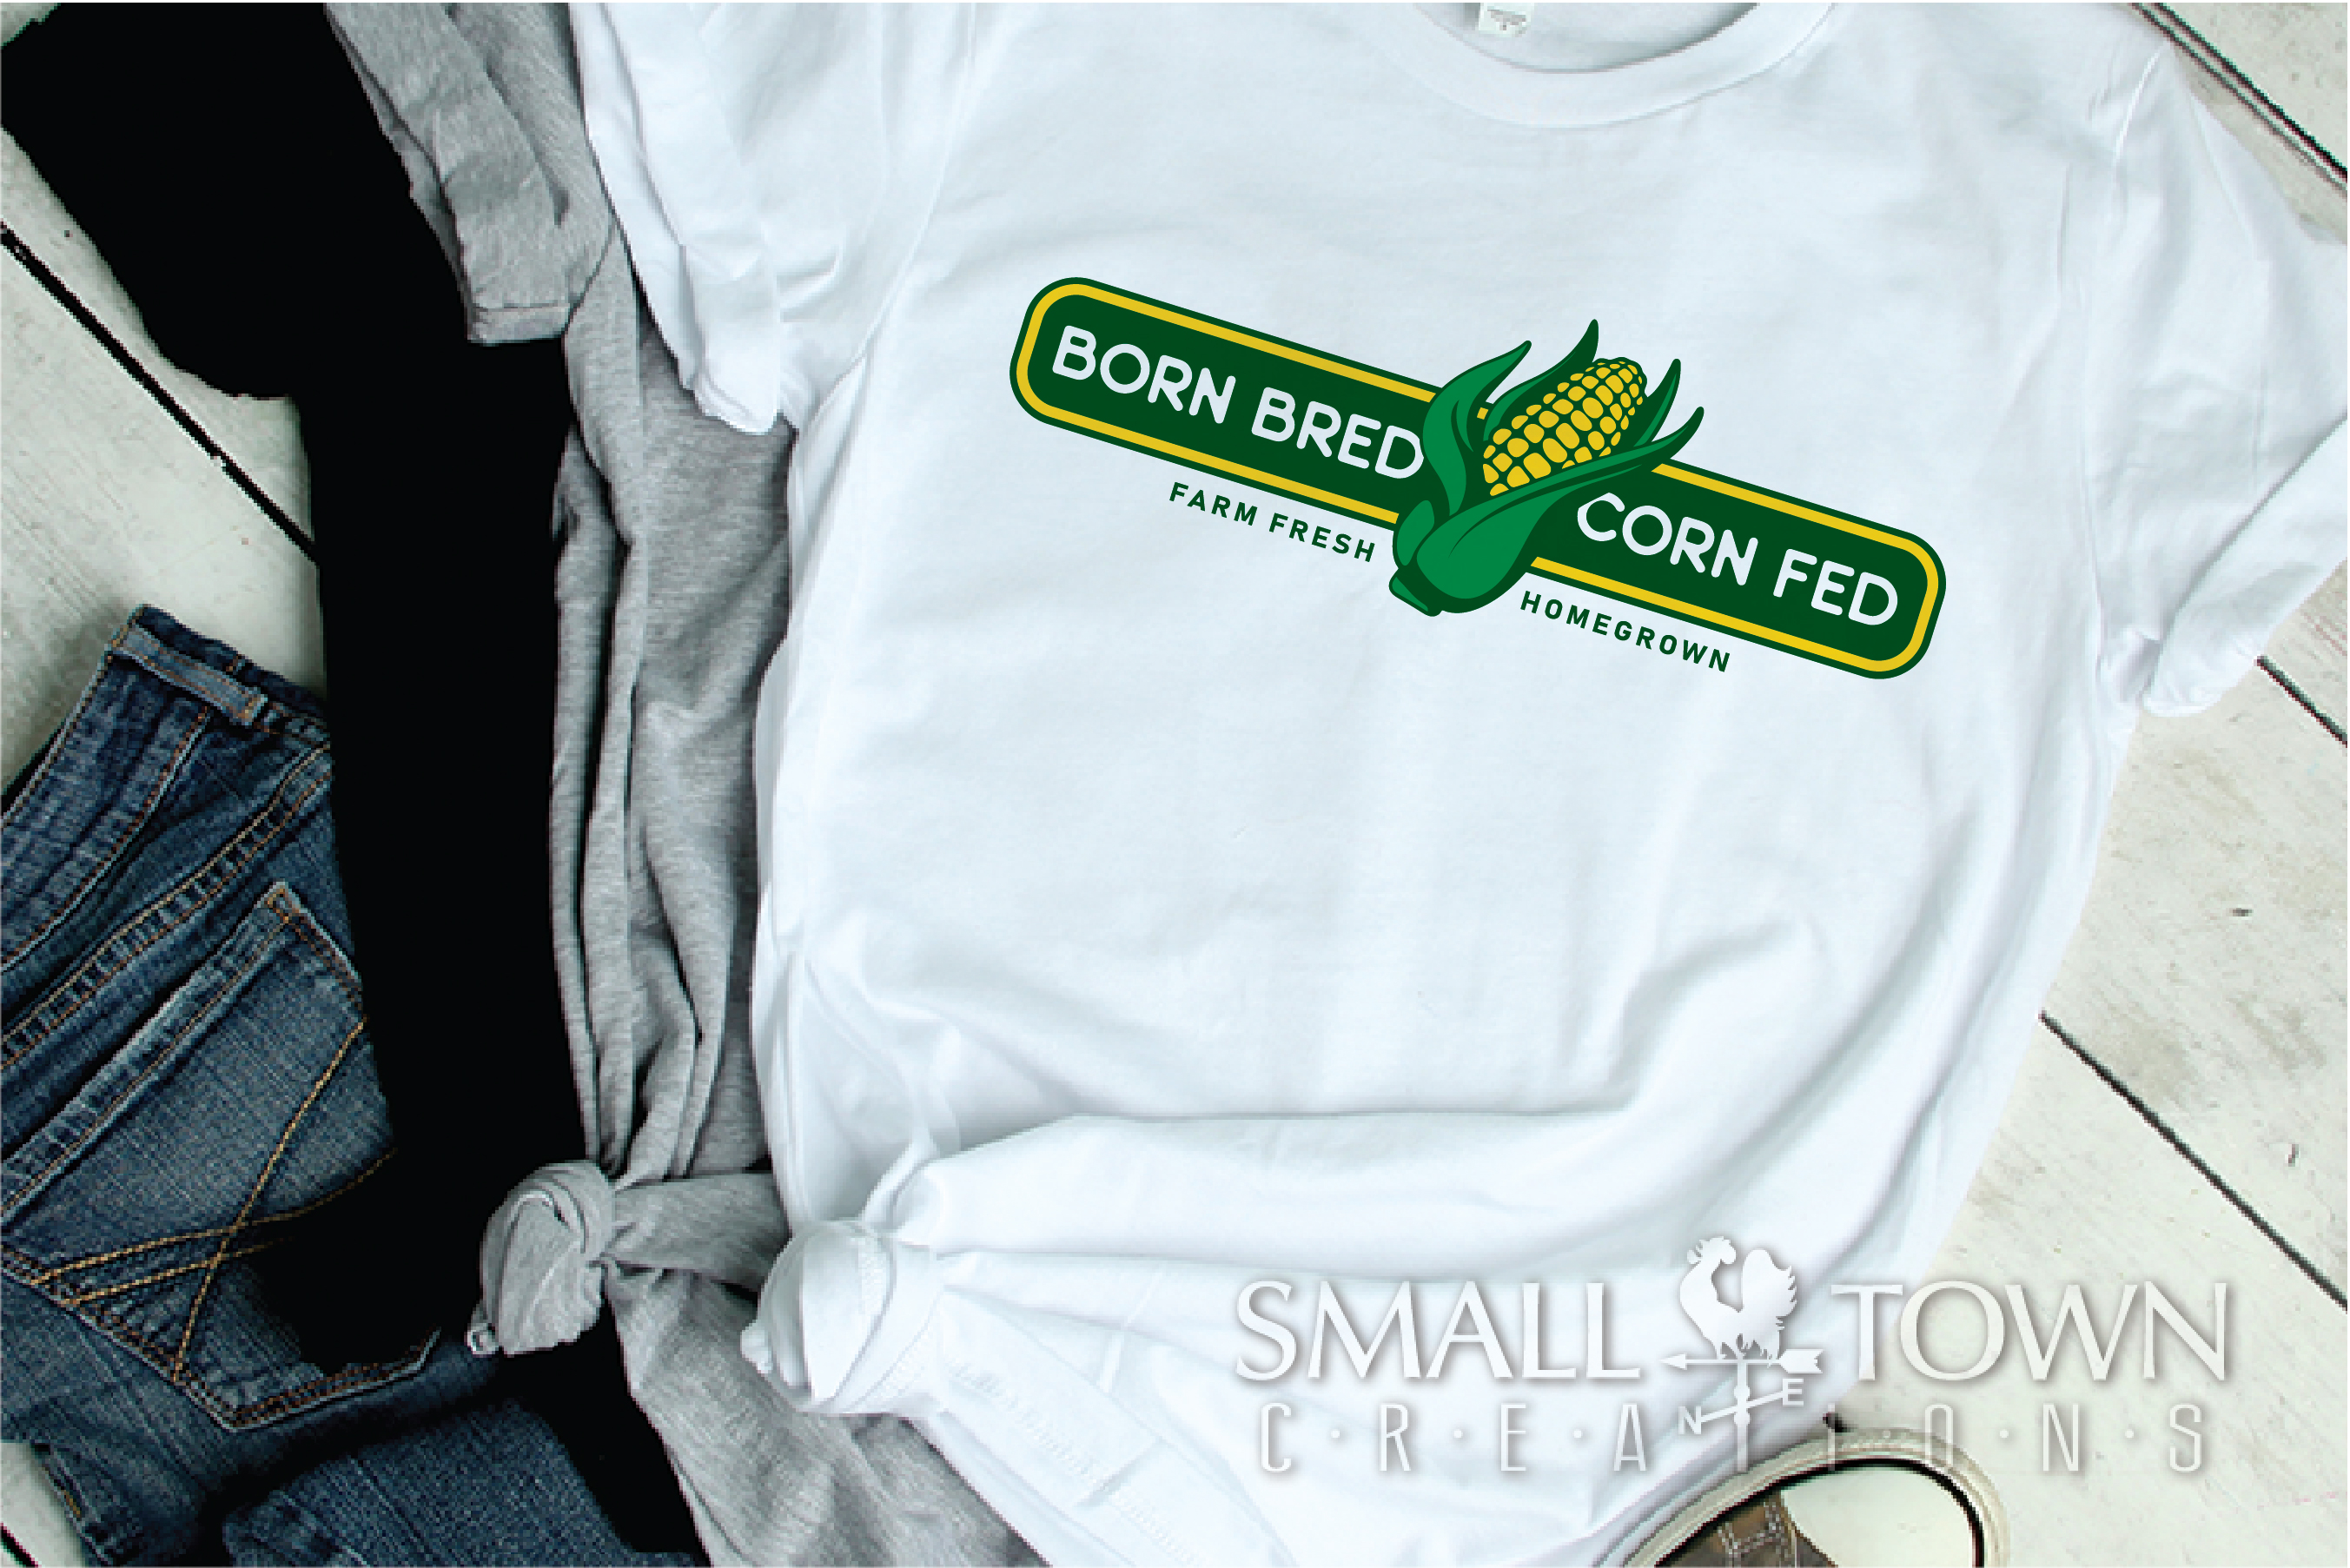 Born Bred Corn Fed, Homegrown, Farm Fresh PRINT, & DESIGN example image 3